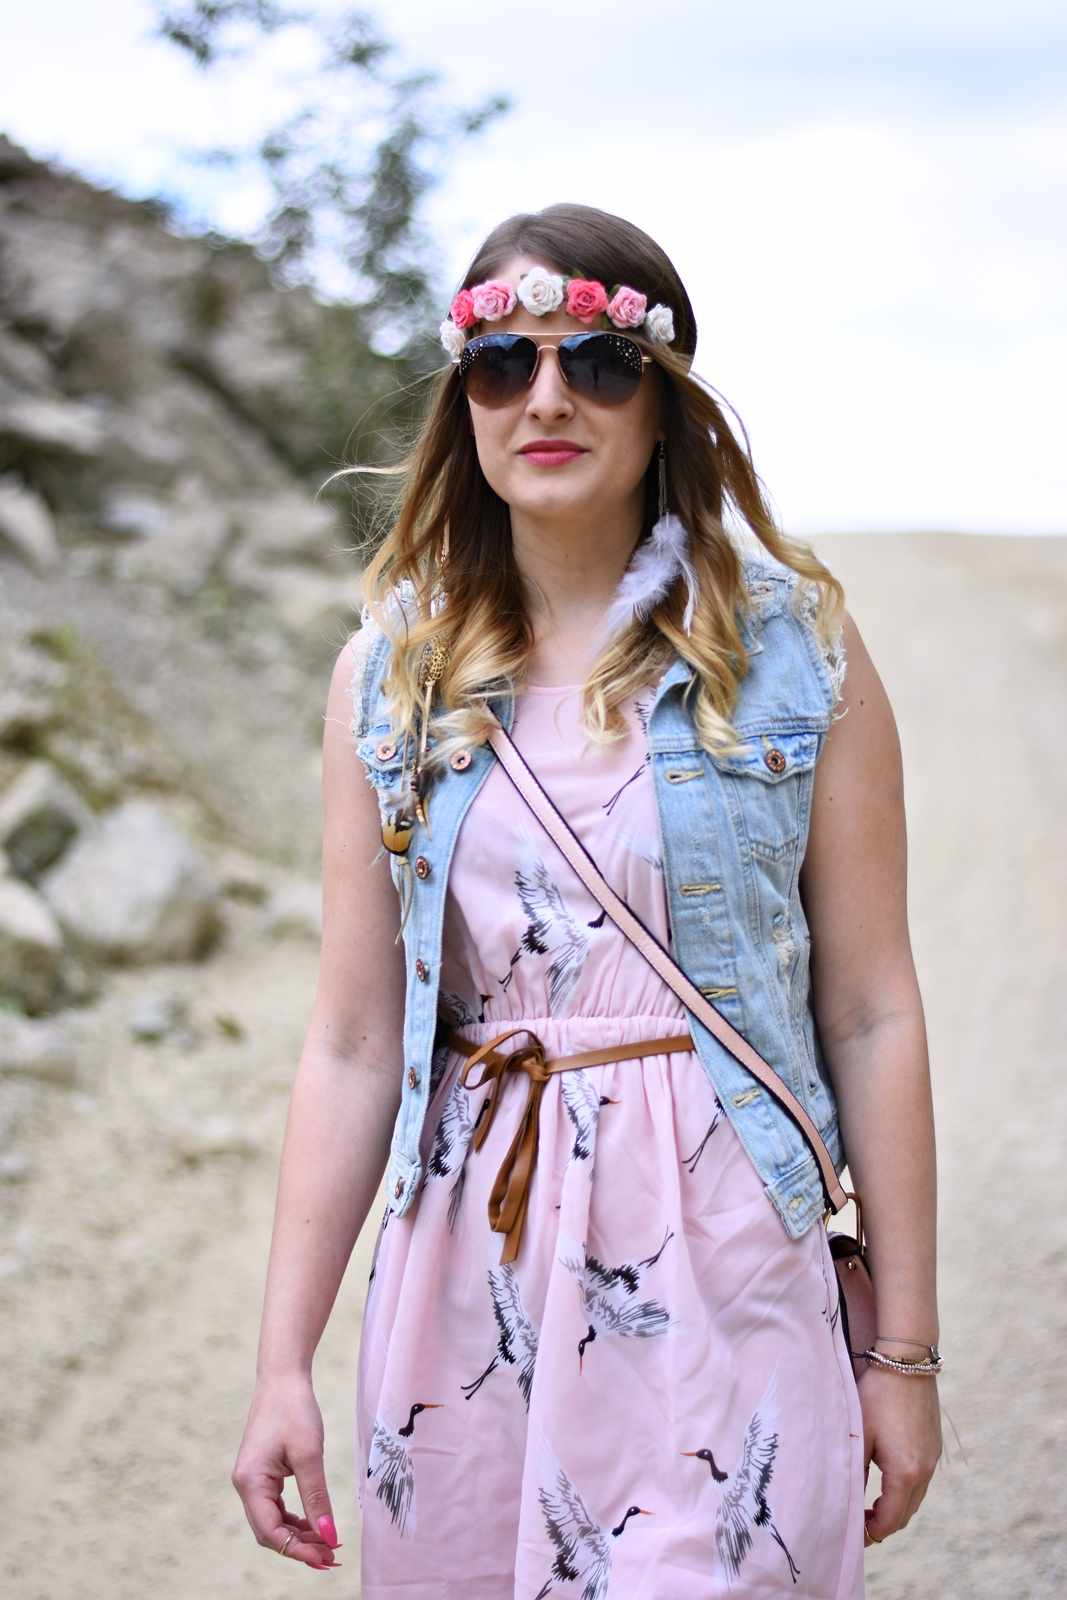 Festival Summer Look - Rosa Kleid Denim Jacke Rosa Tasche - Fashionladyloves - Fashion Blog - Modeblog